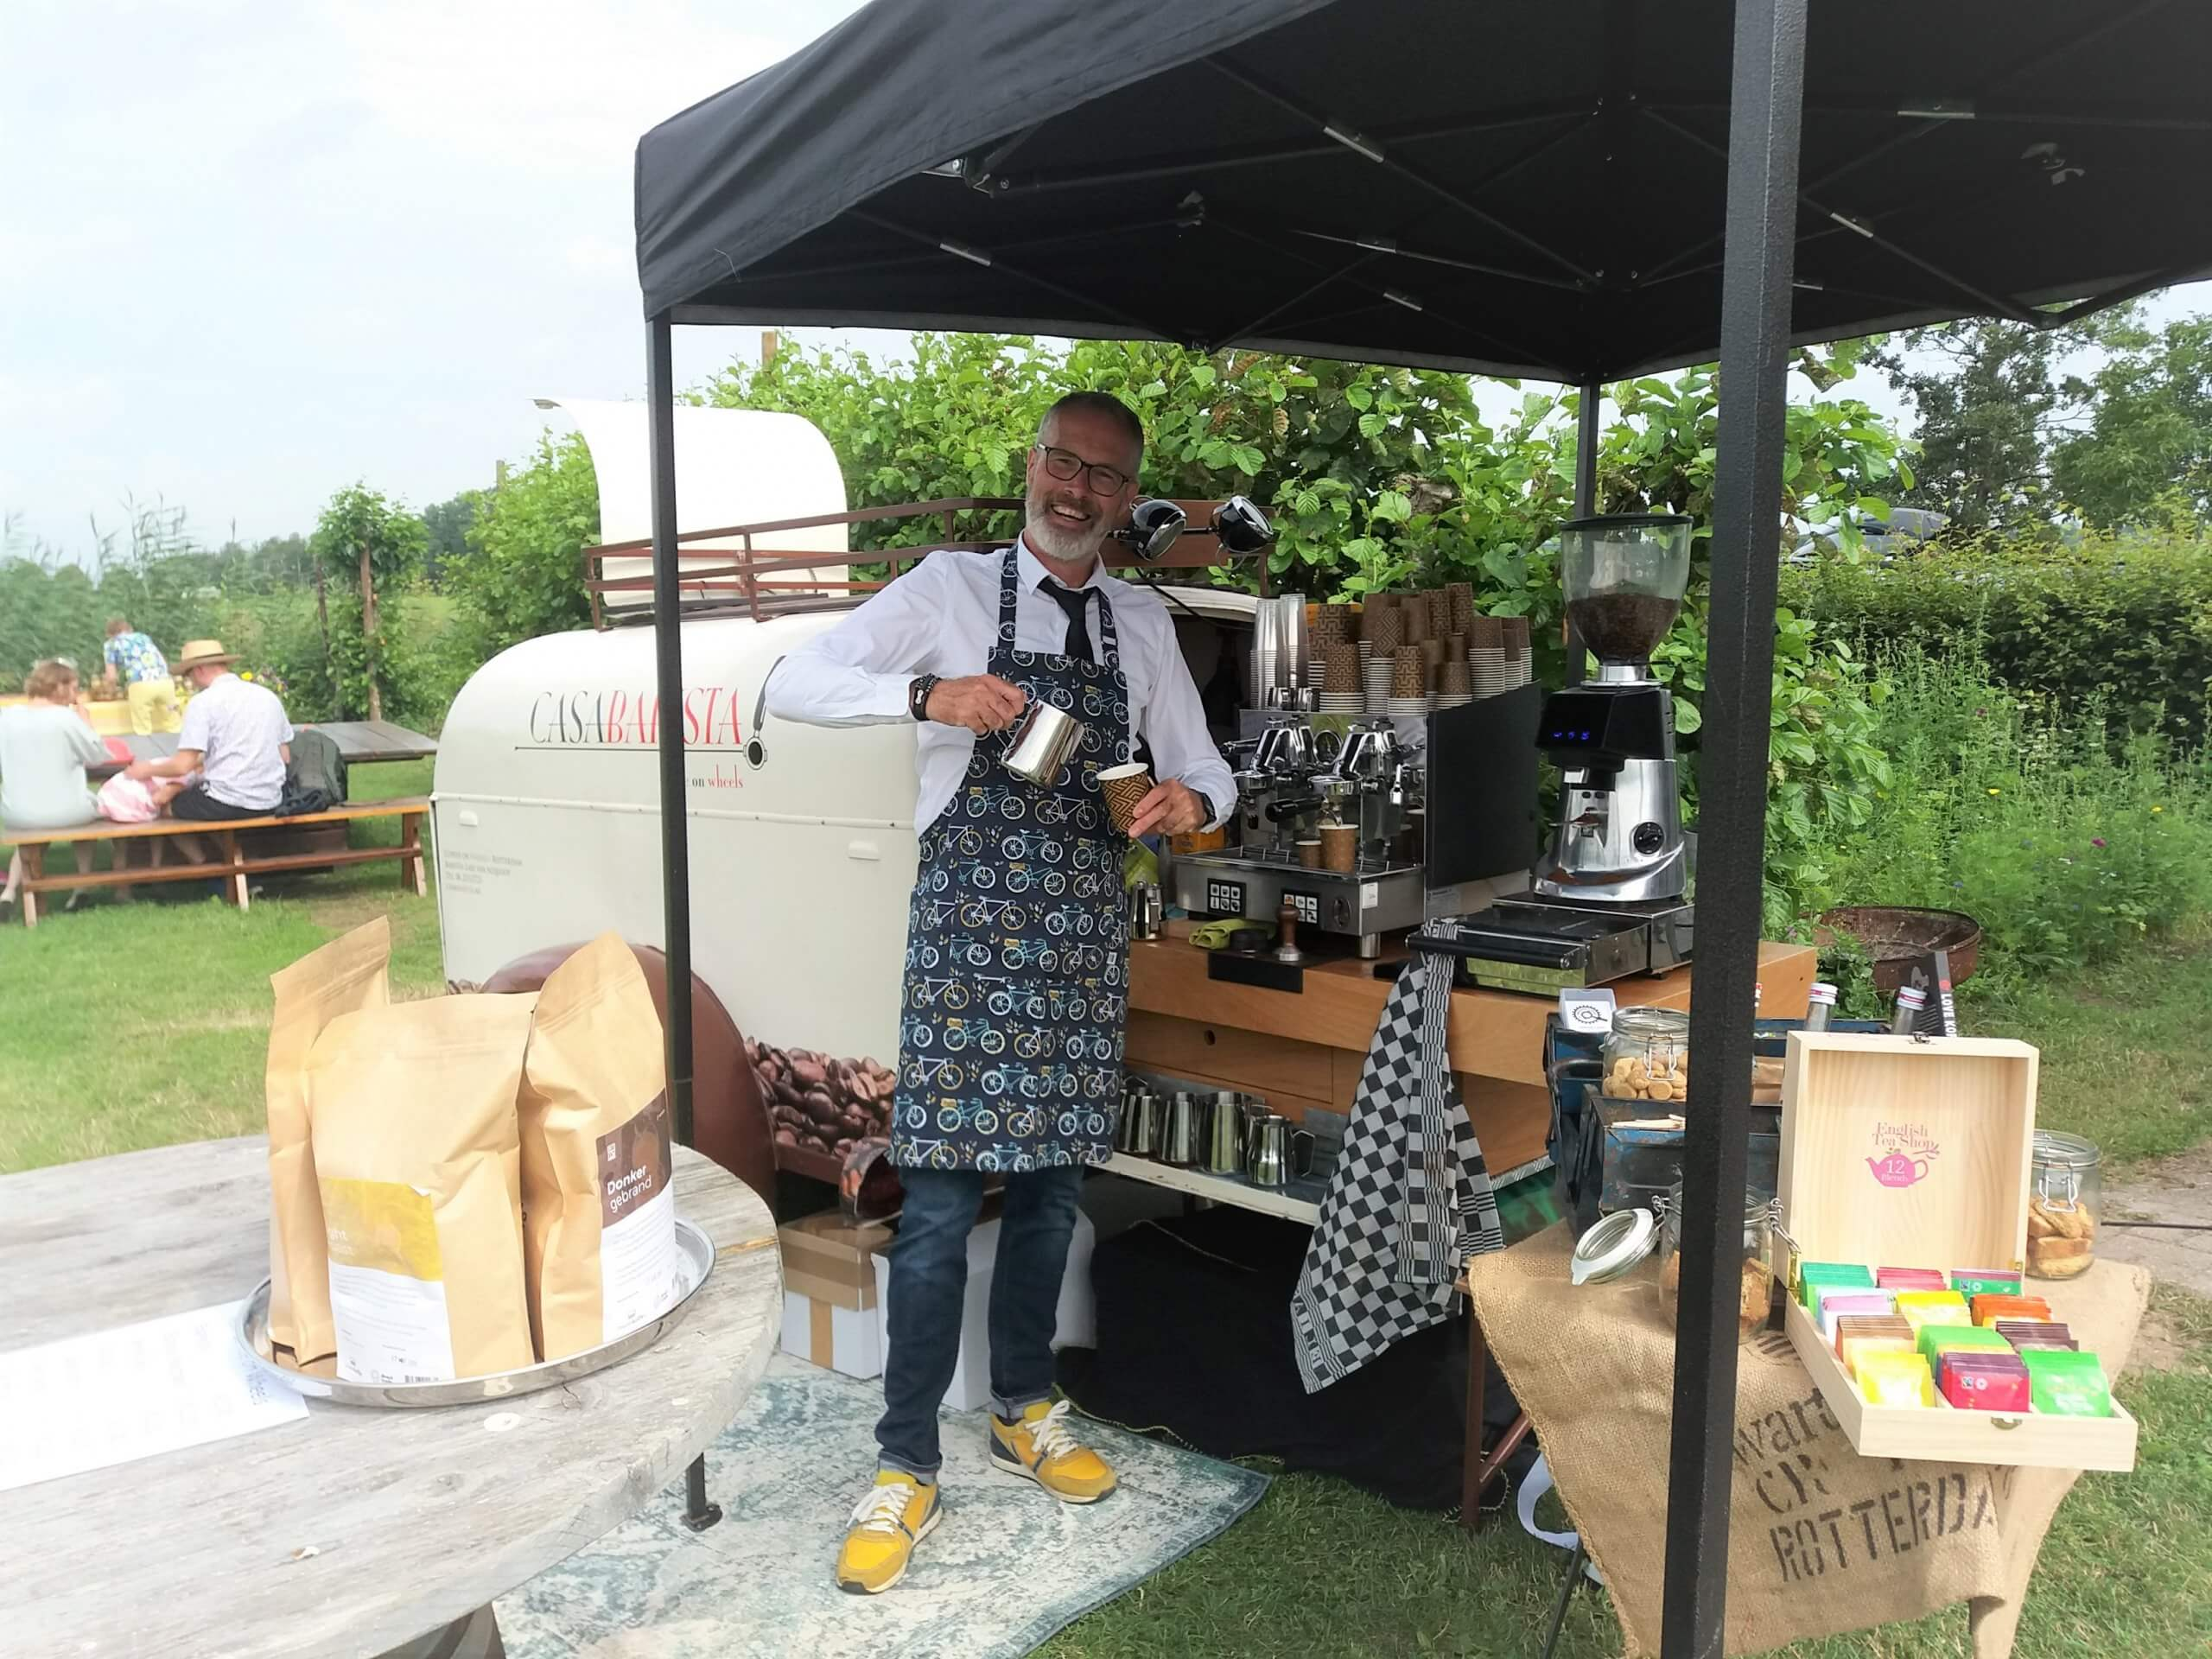 Maak kennis met Coffee on Wheels Arnhem